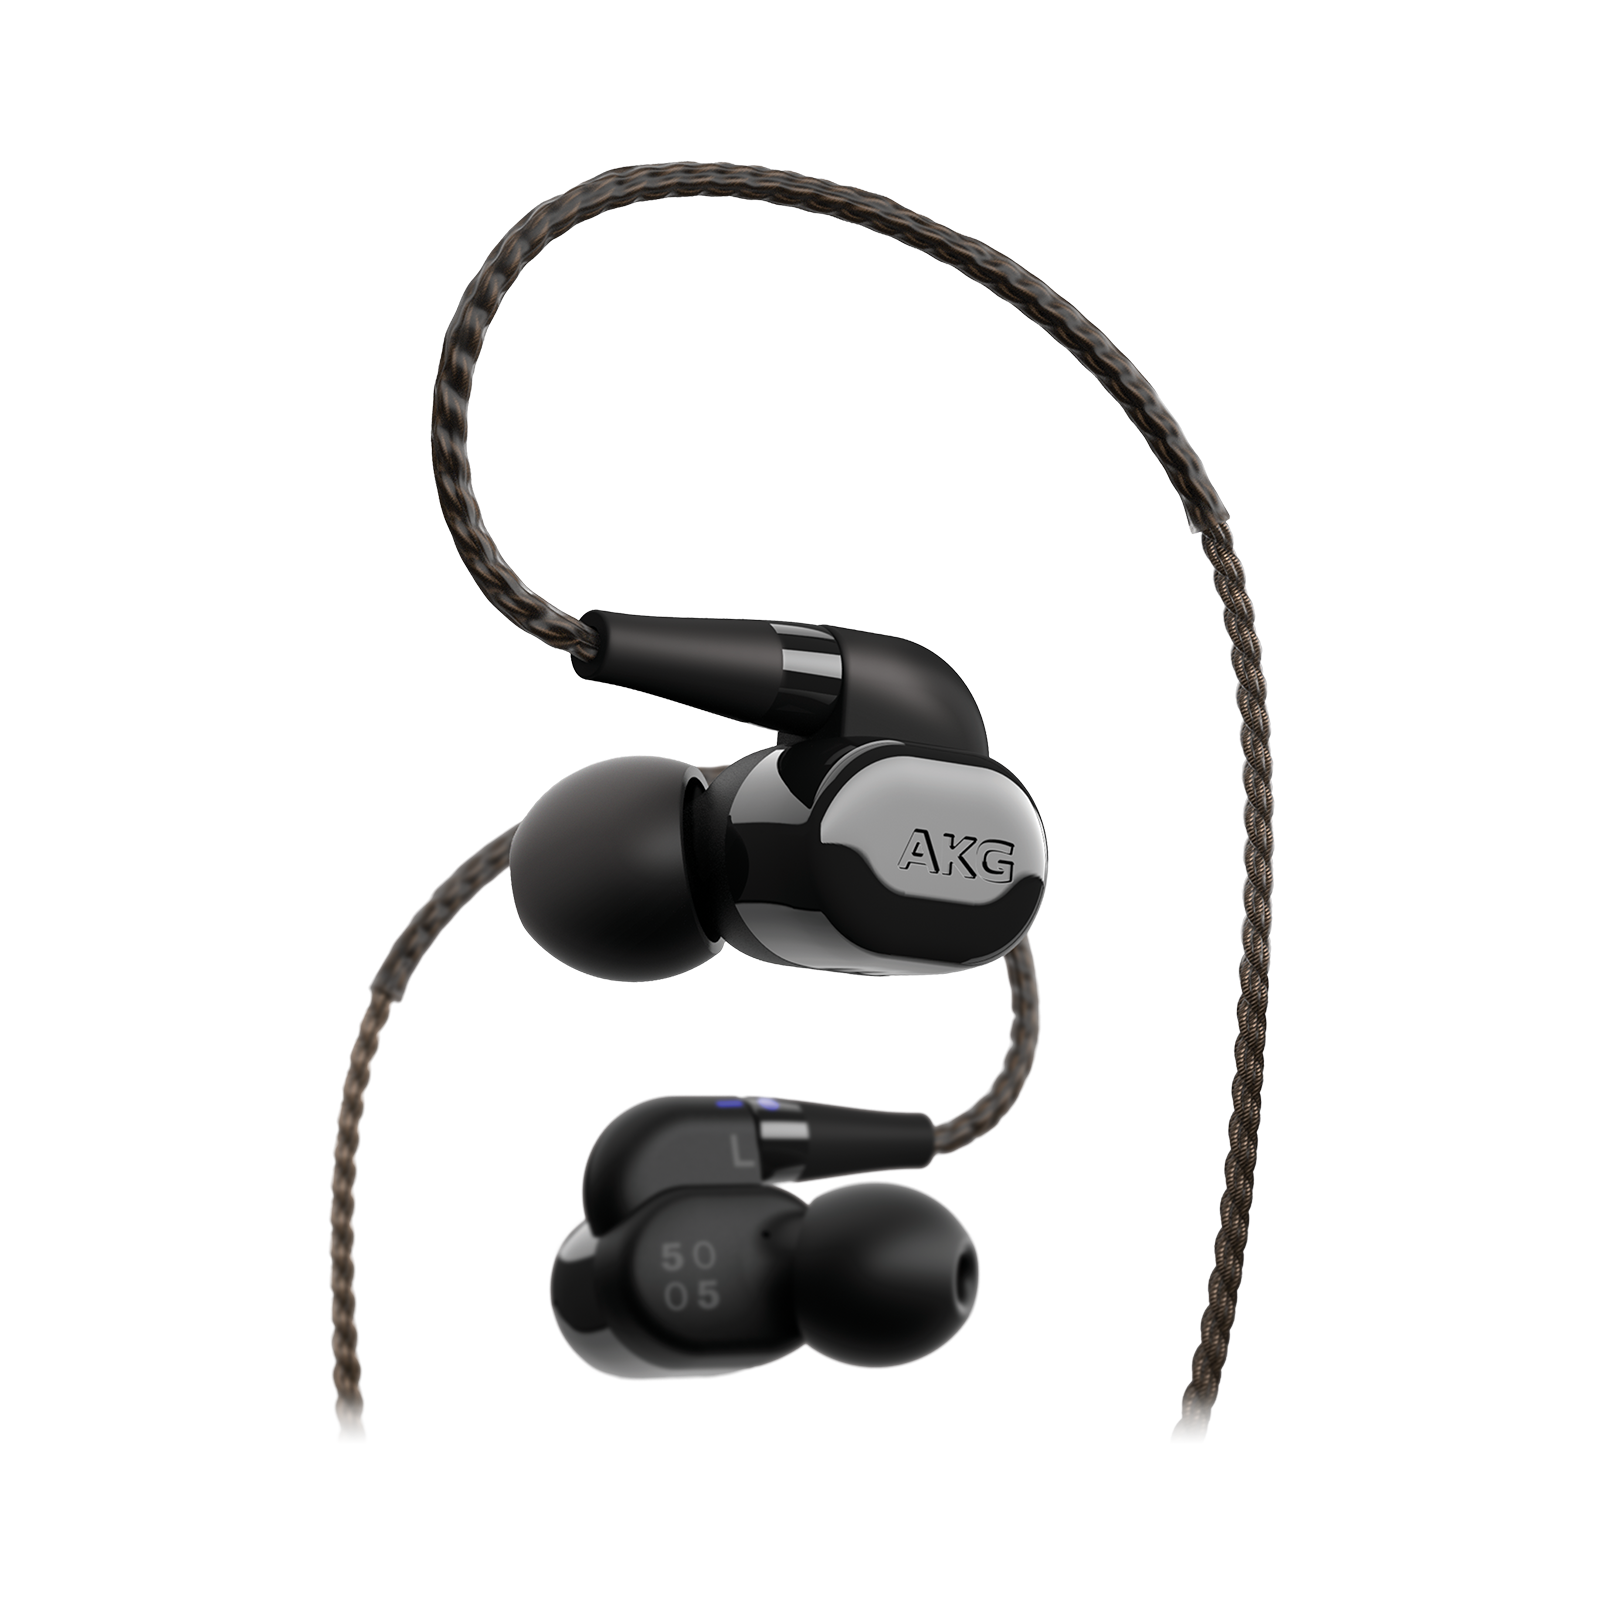 AKG N5005 - Black - Reference Class 5-driver configuration in-ear headphones with customizable sound - Detailshot 1